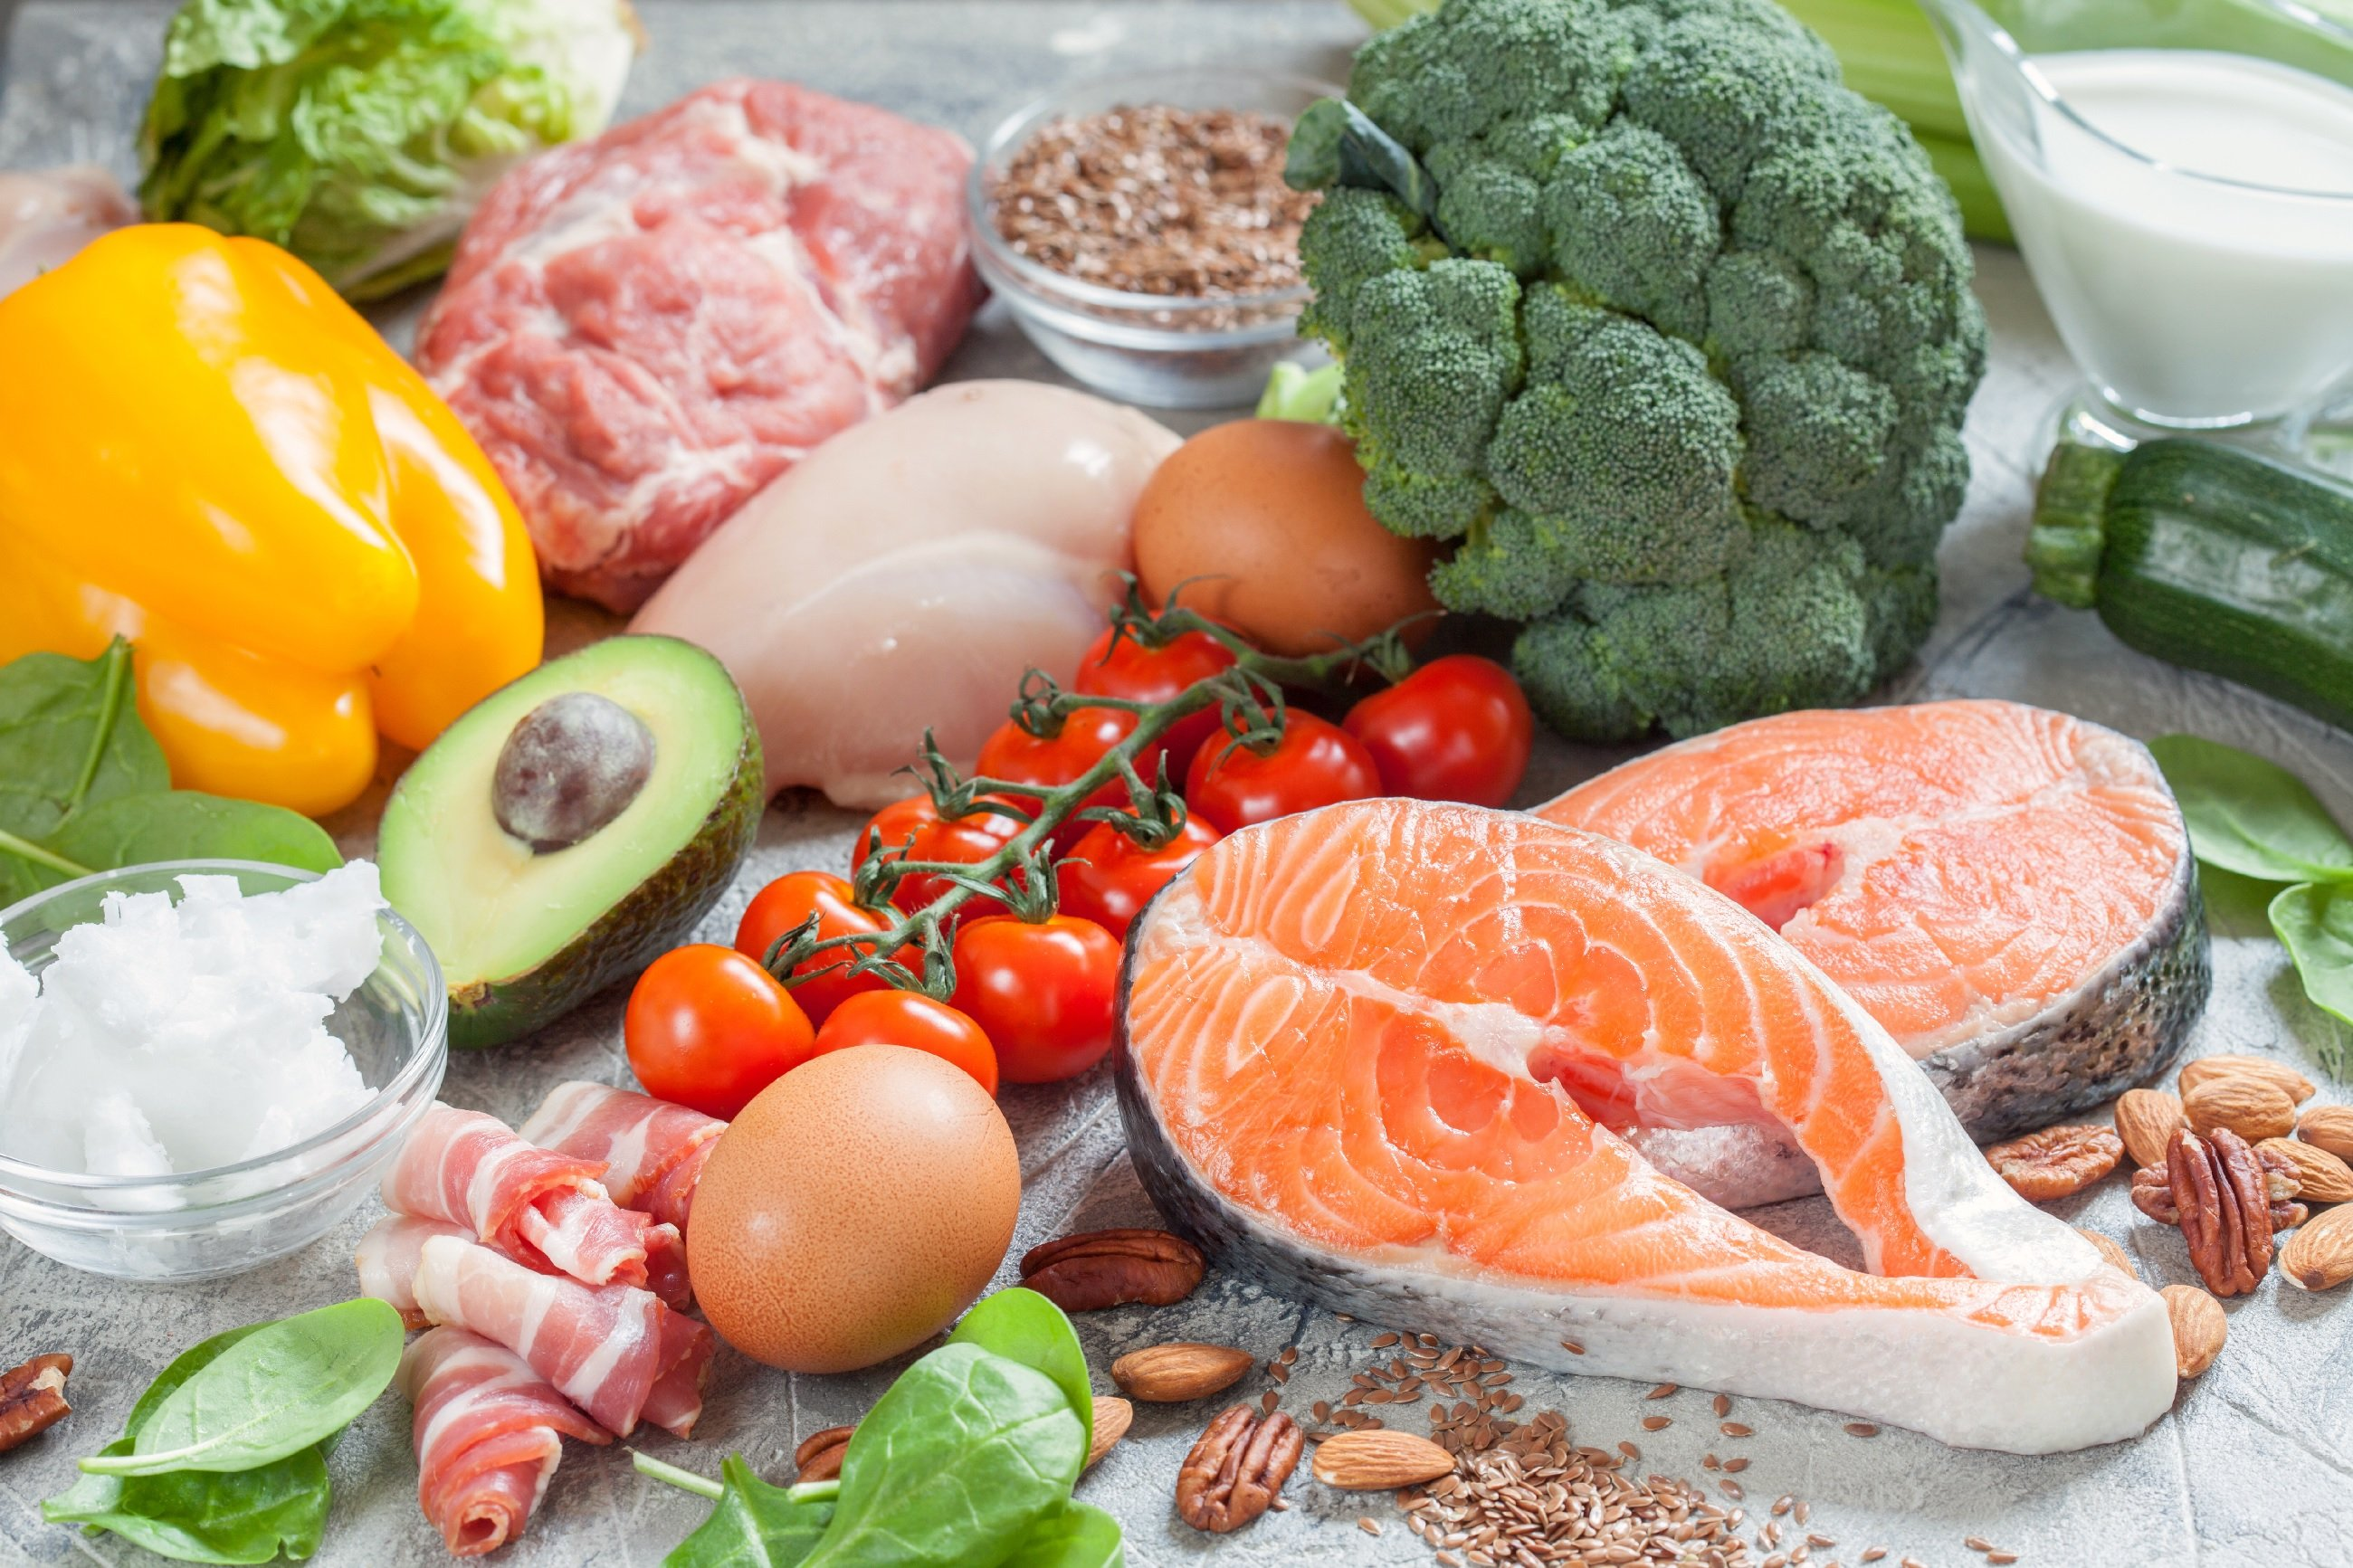 practice healthy eating habits by eating healthy foods like the ones here: salmon, broccoli, tomatoes, avocado, eggs